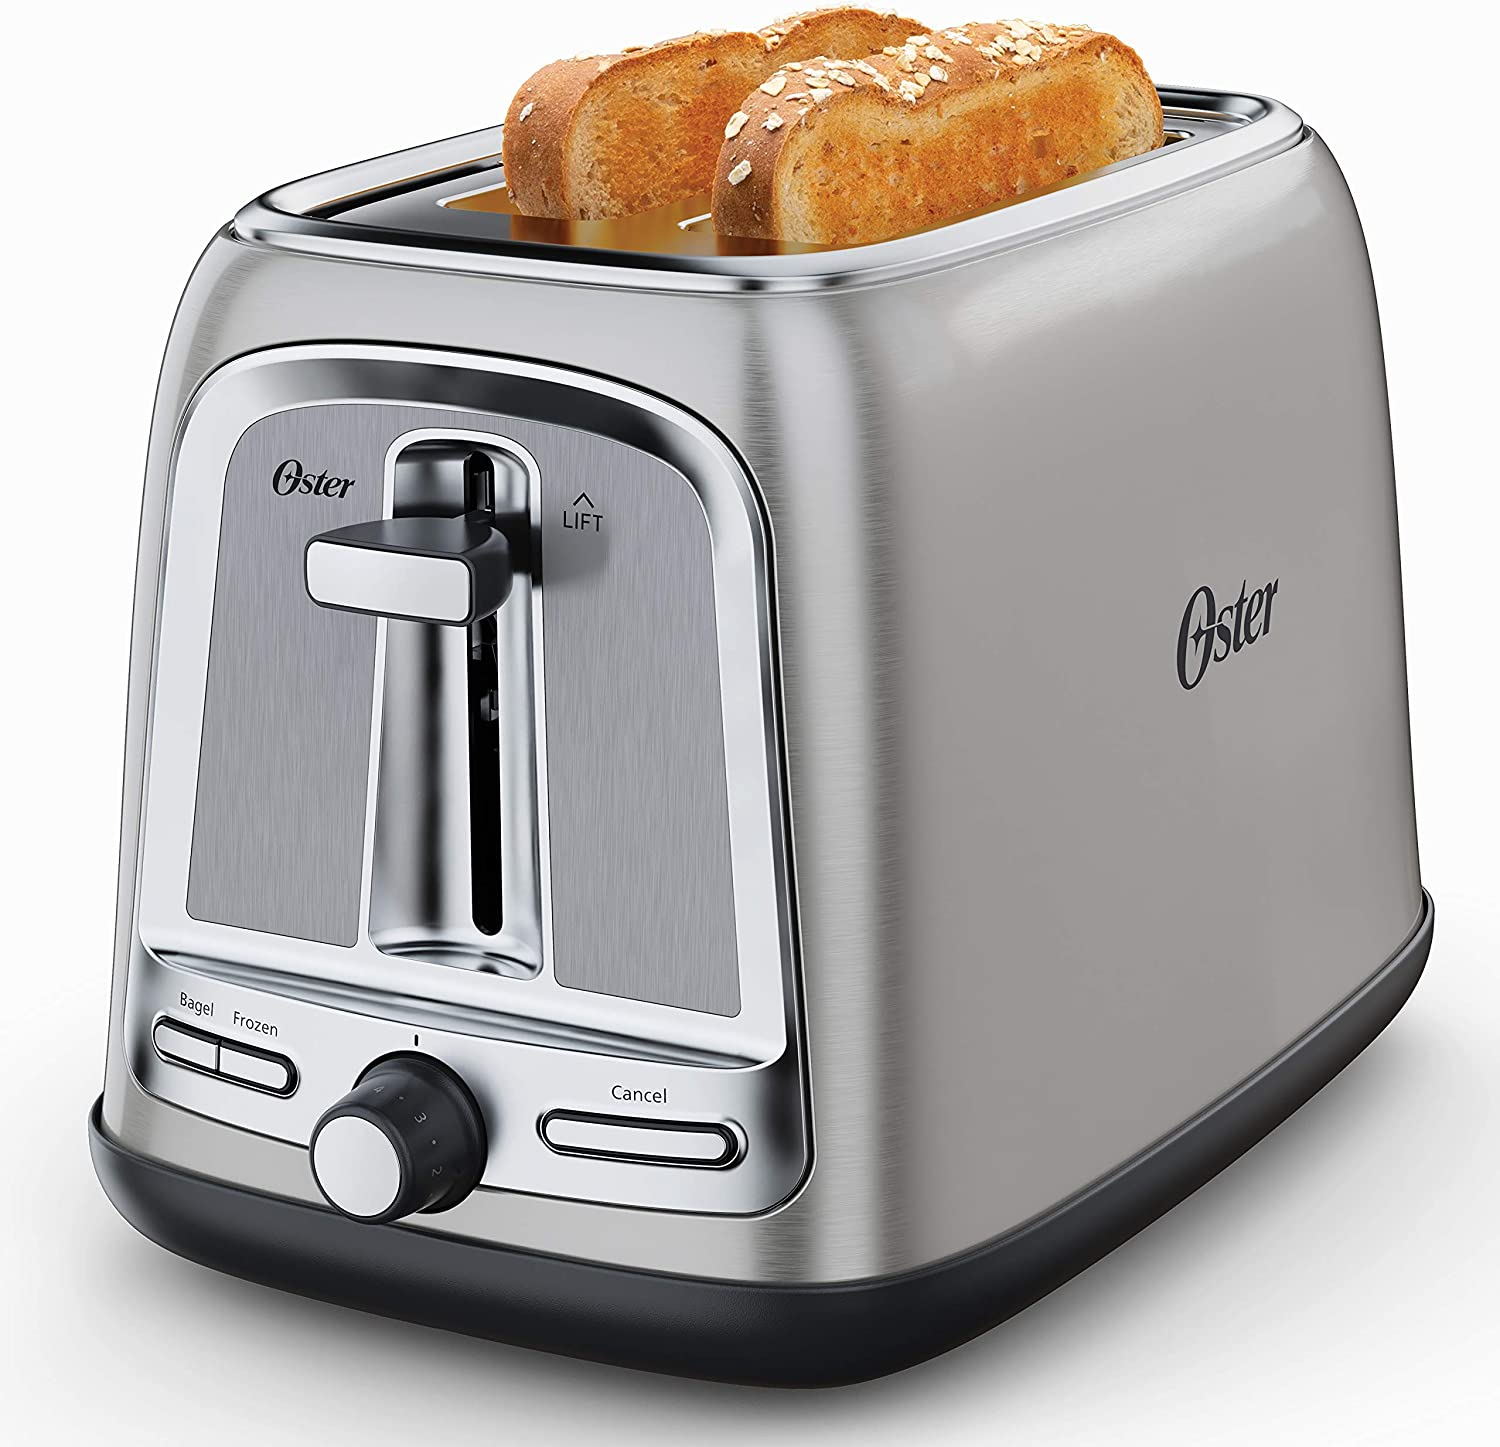 Oster 2-Slice Toaster with Advanced Toast Technology, Stainless Steel (Renewed)